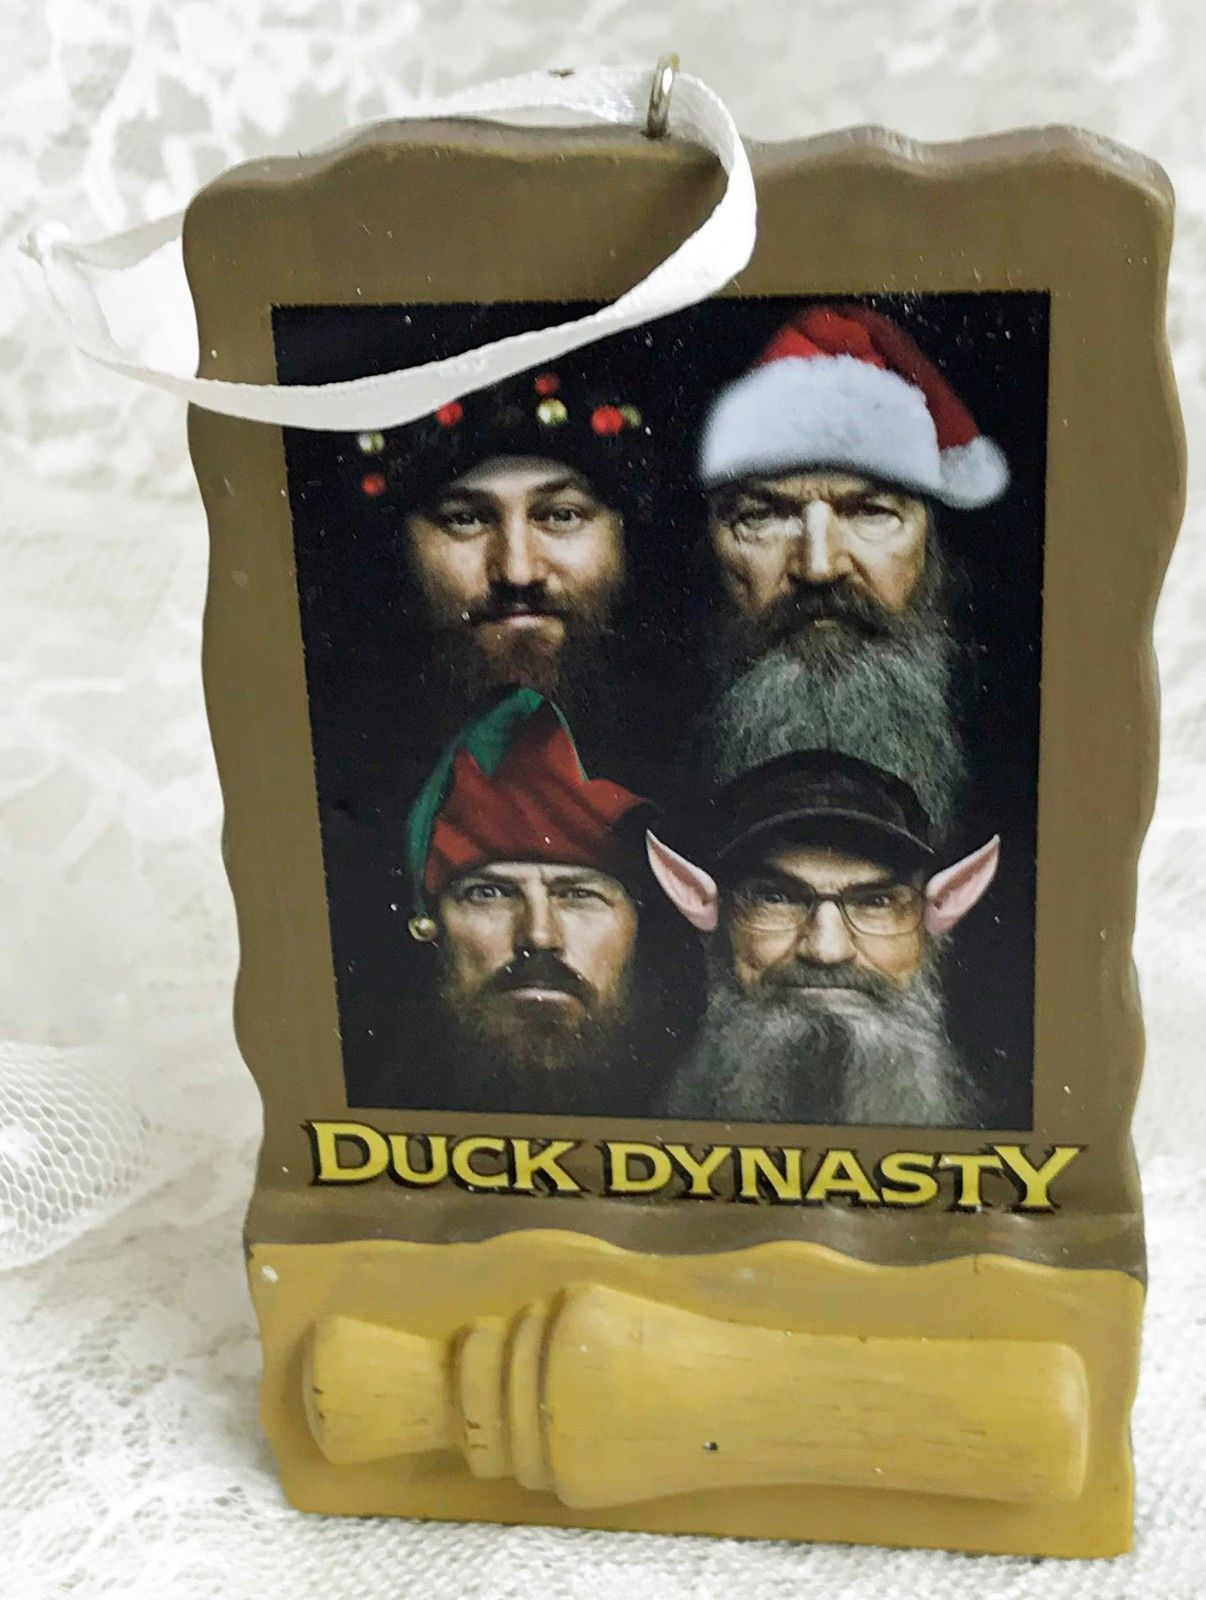 Primary image for 2014 Hallmark Duck Dynasty Christmas Tree Ornament Happy Happy Happy Holidays